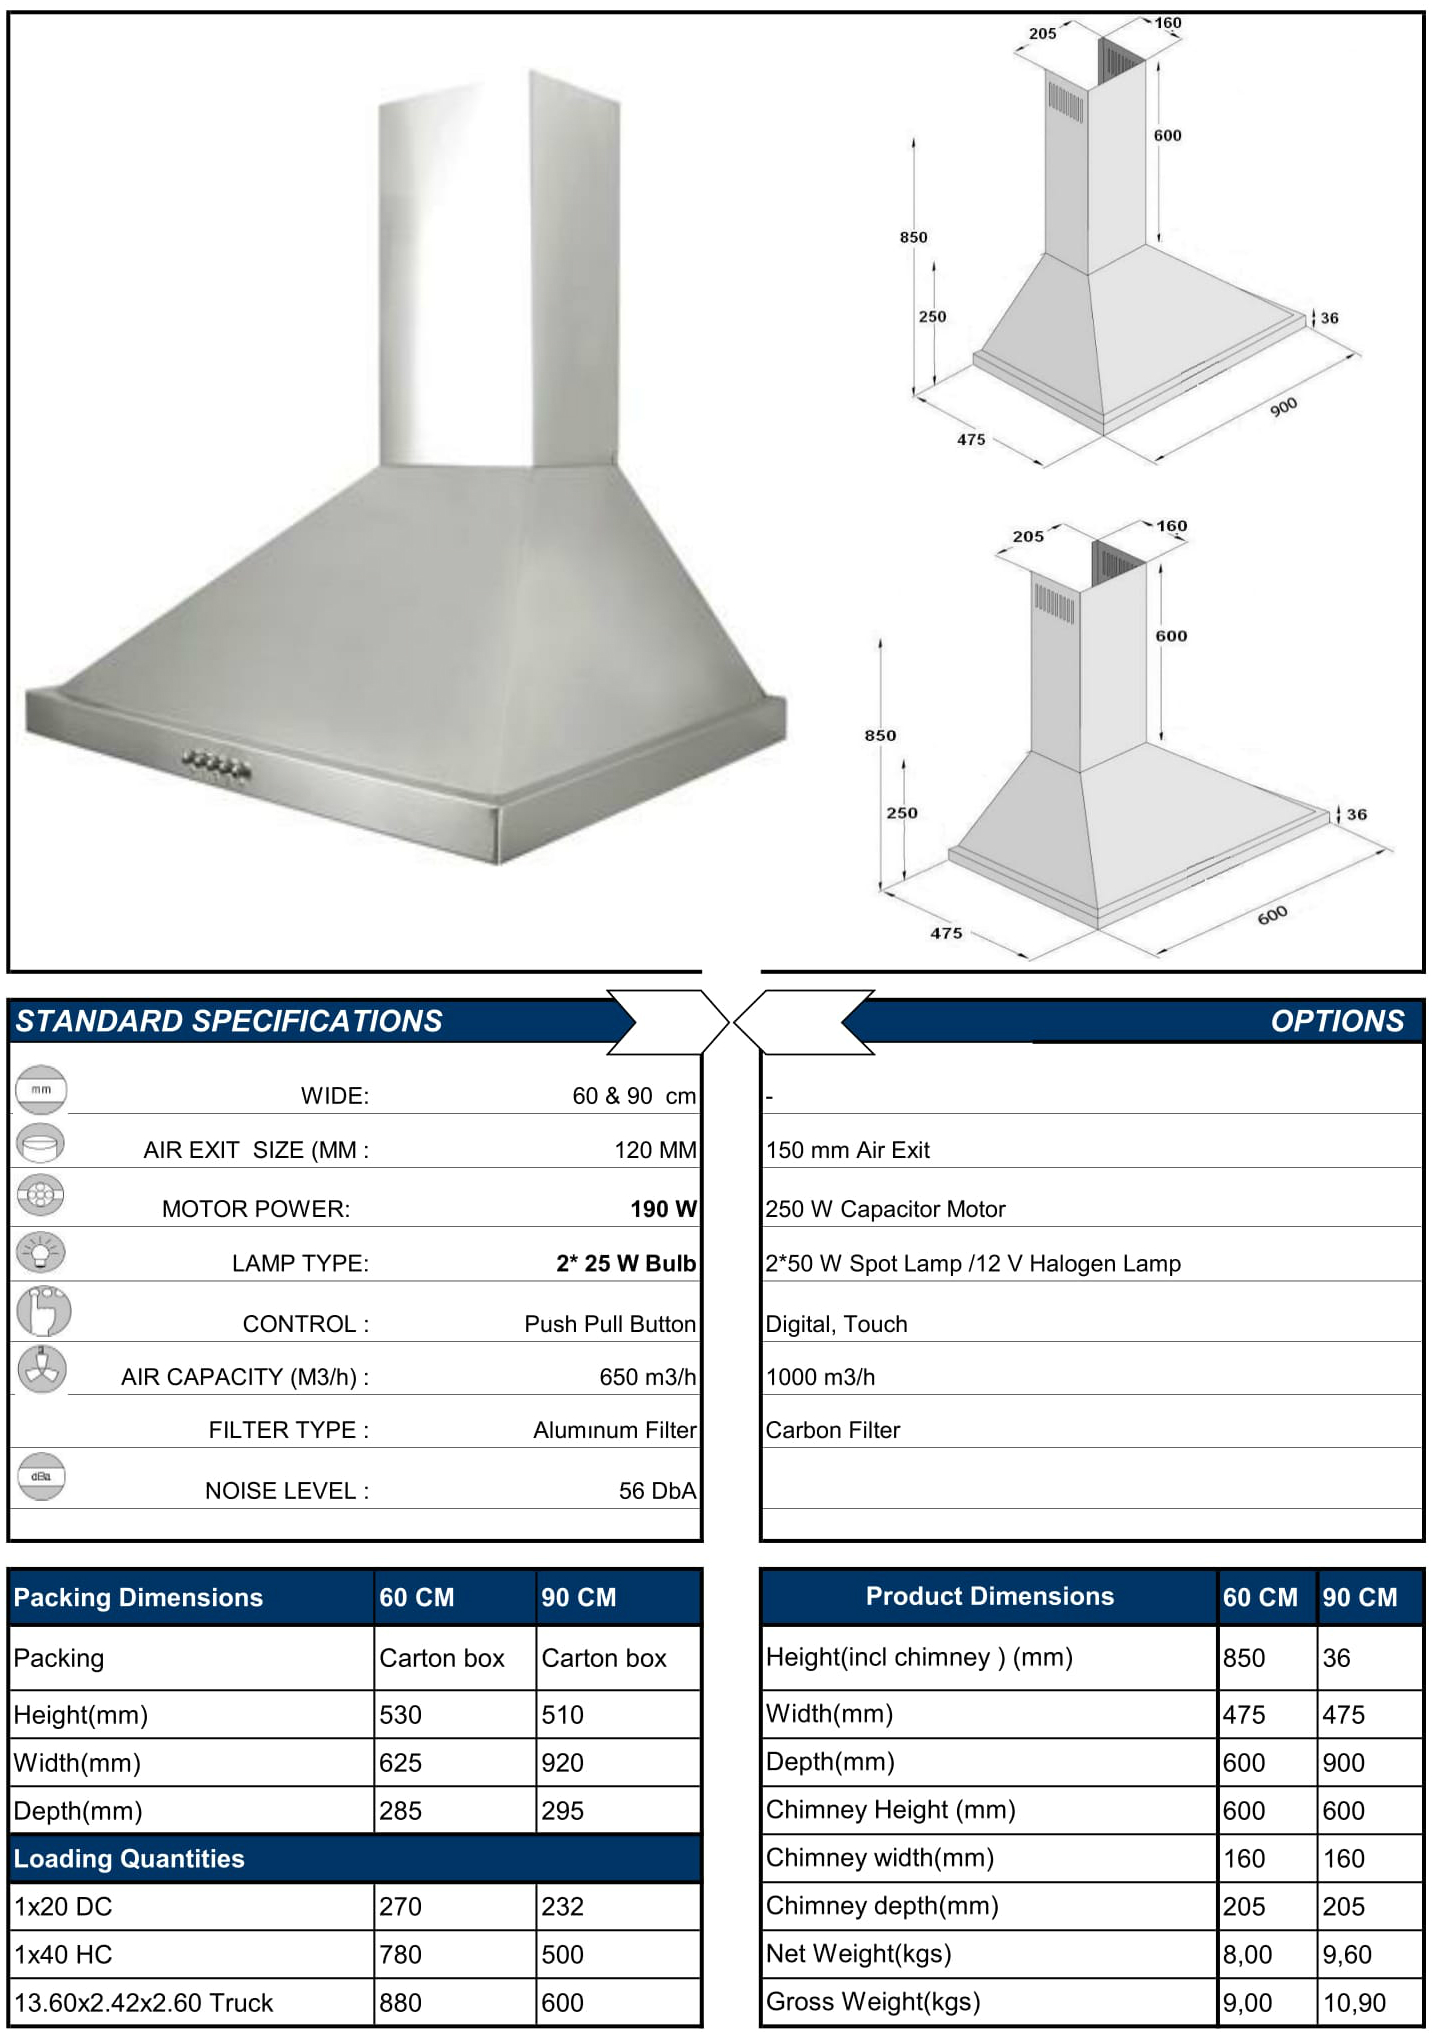 stainless steel hoods